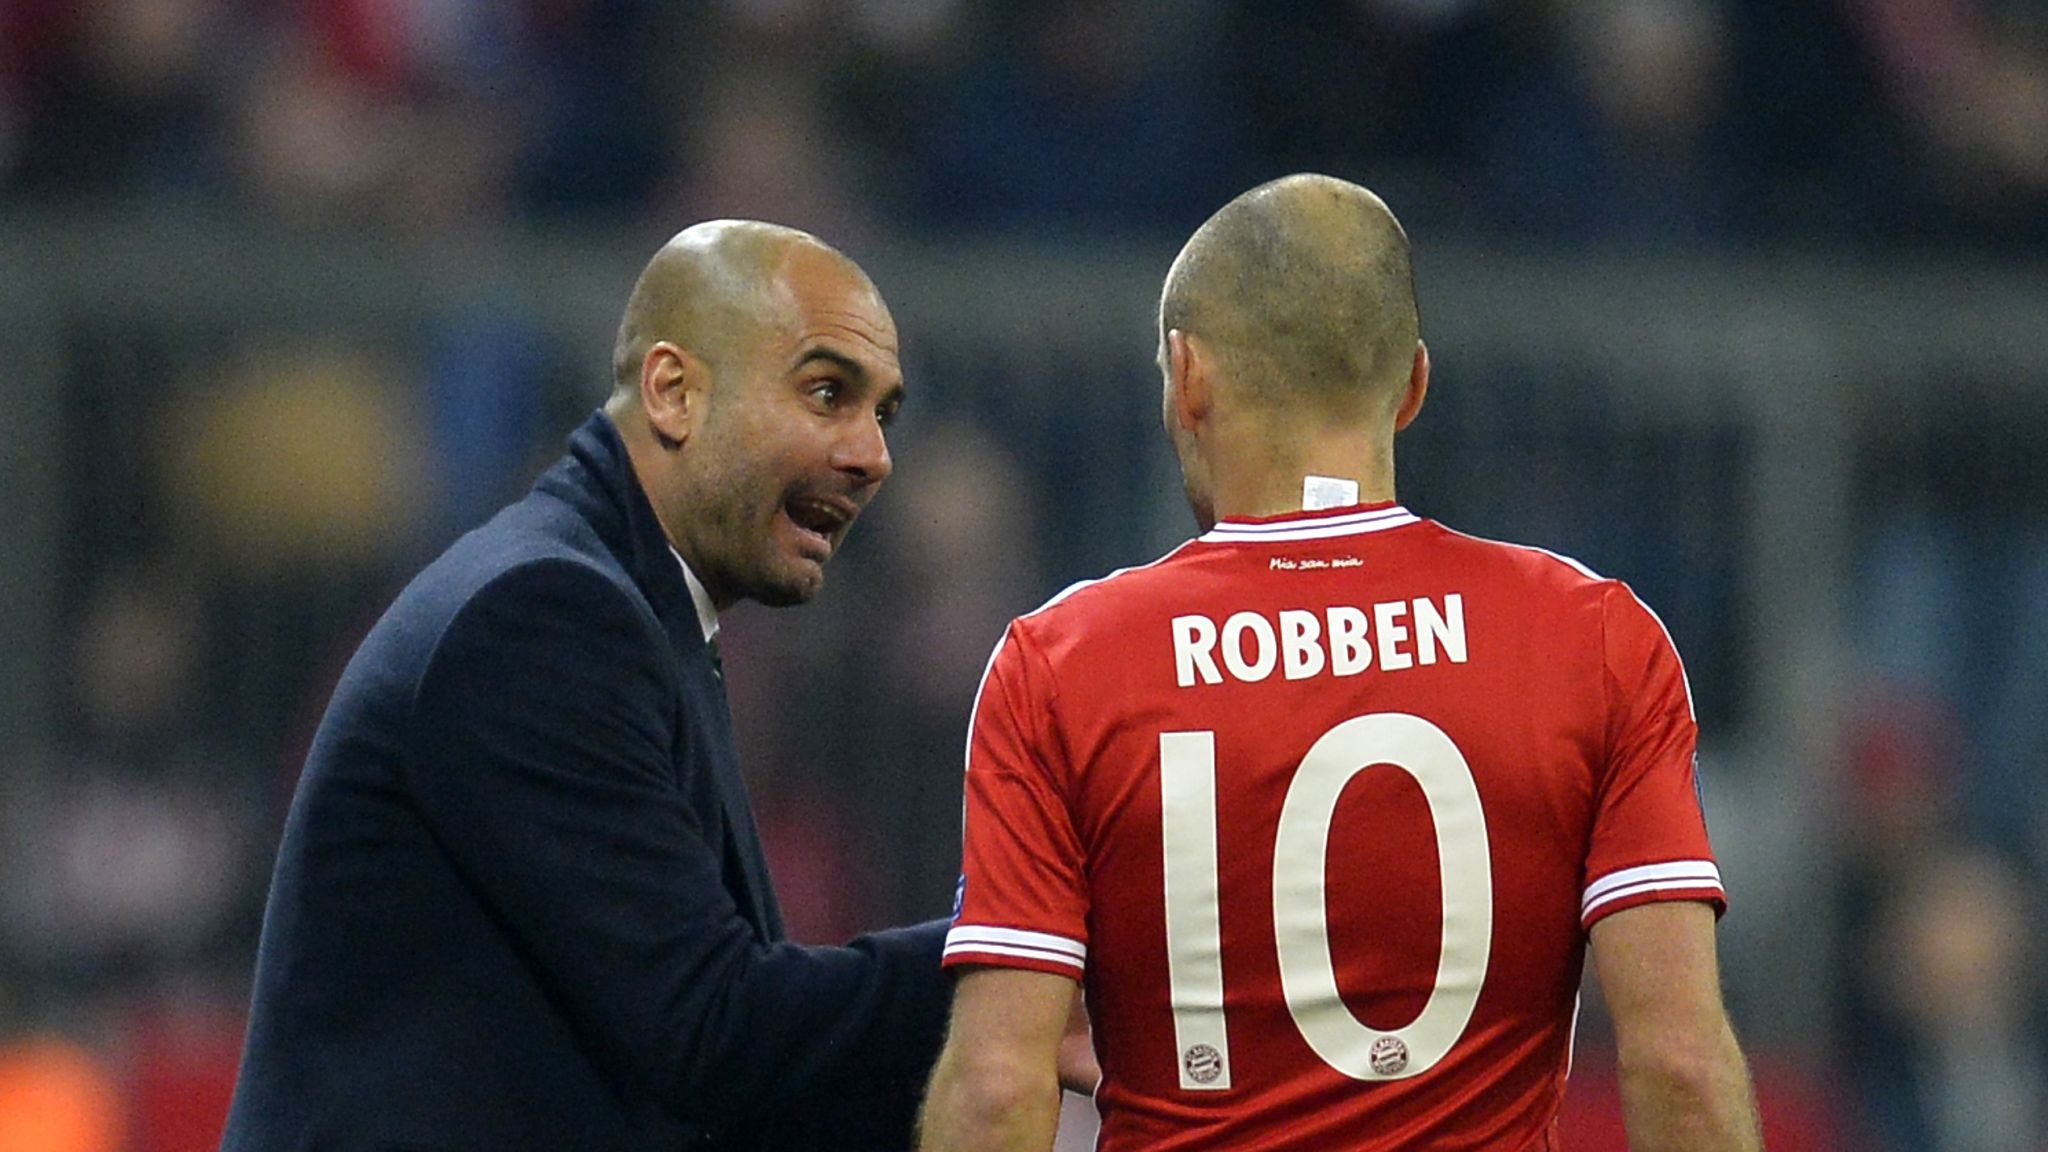 Image result for Robben and Guardiola